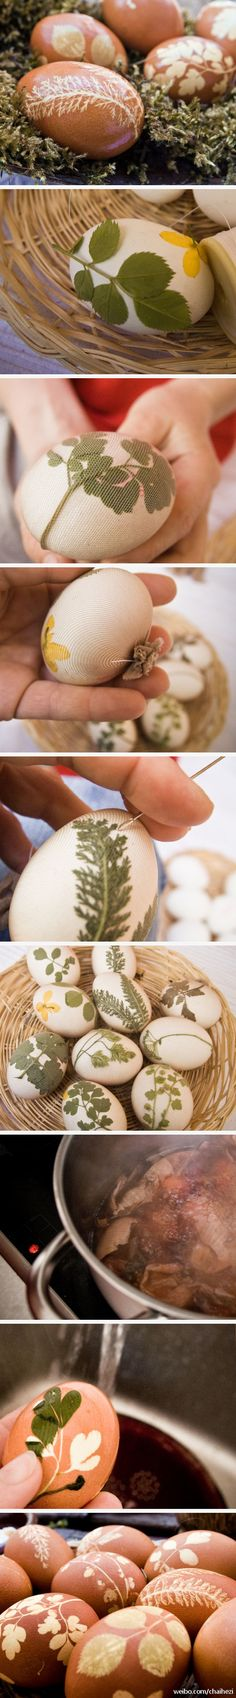 natural egg decorating